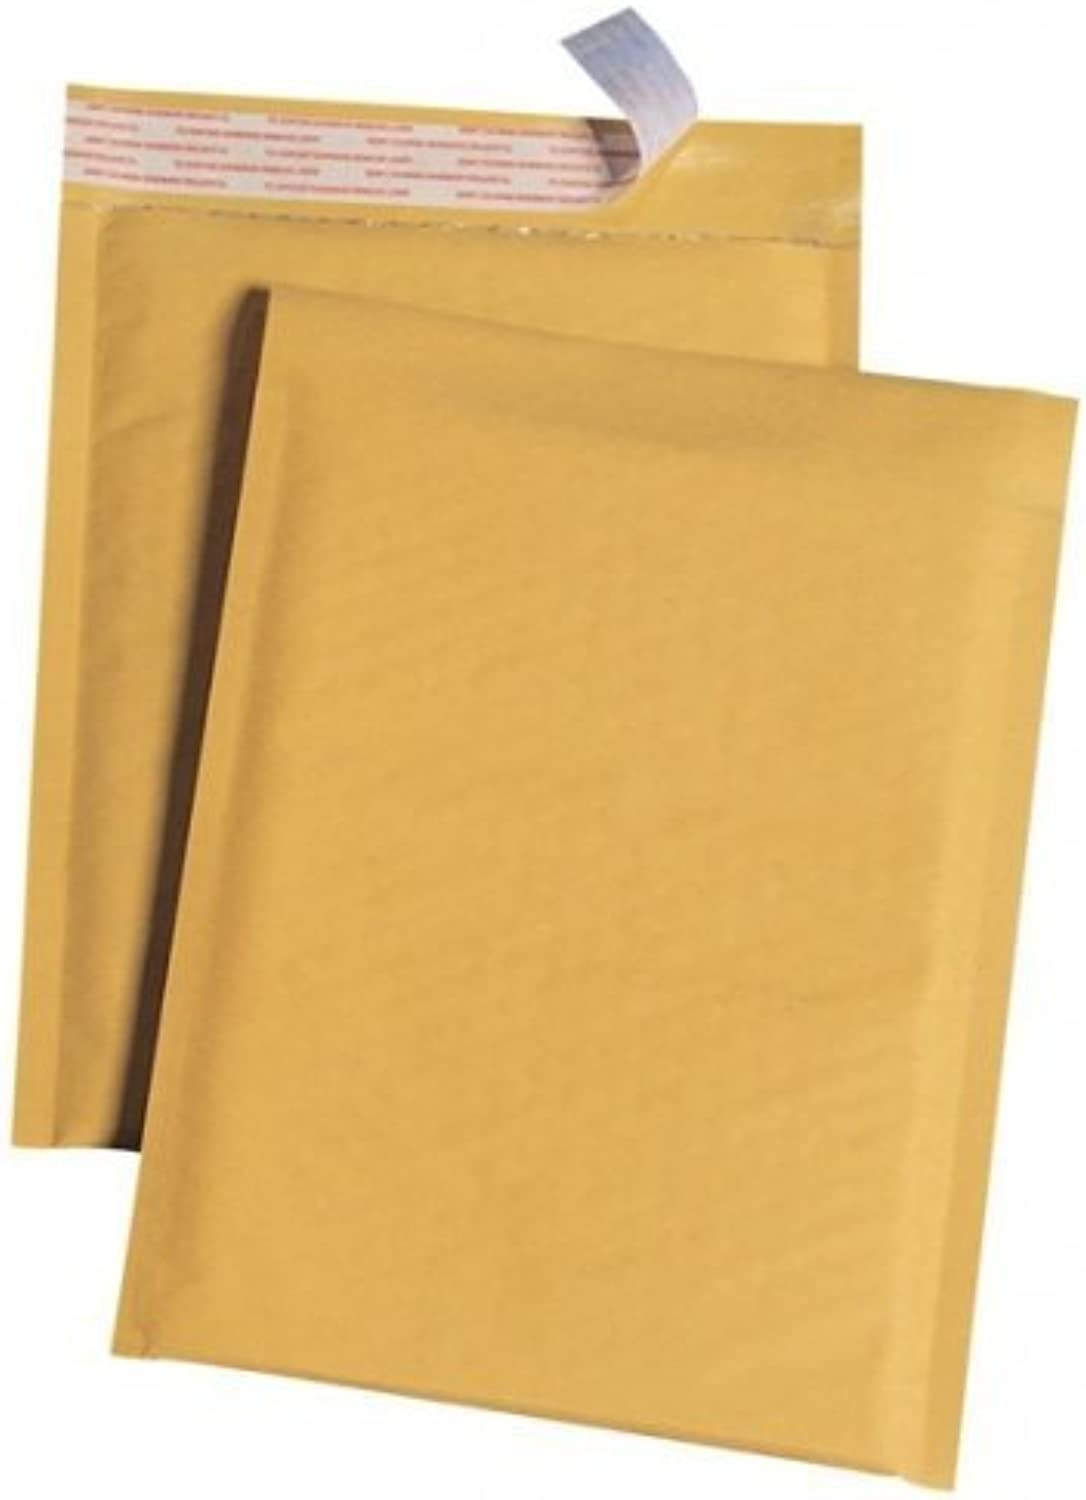 0 6.5x10  KRAFT BUBBLE MAILER PADDED PADDED PADDED ENVELOPES-100 qty by ESUPPLYSTORE B0141N4QBA    | Perfekt In Verarbeitung